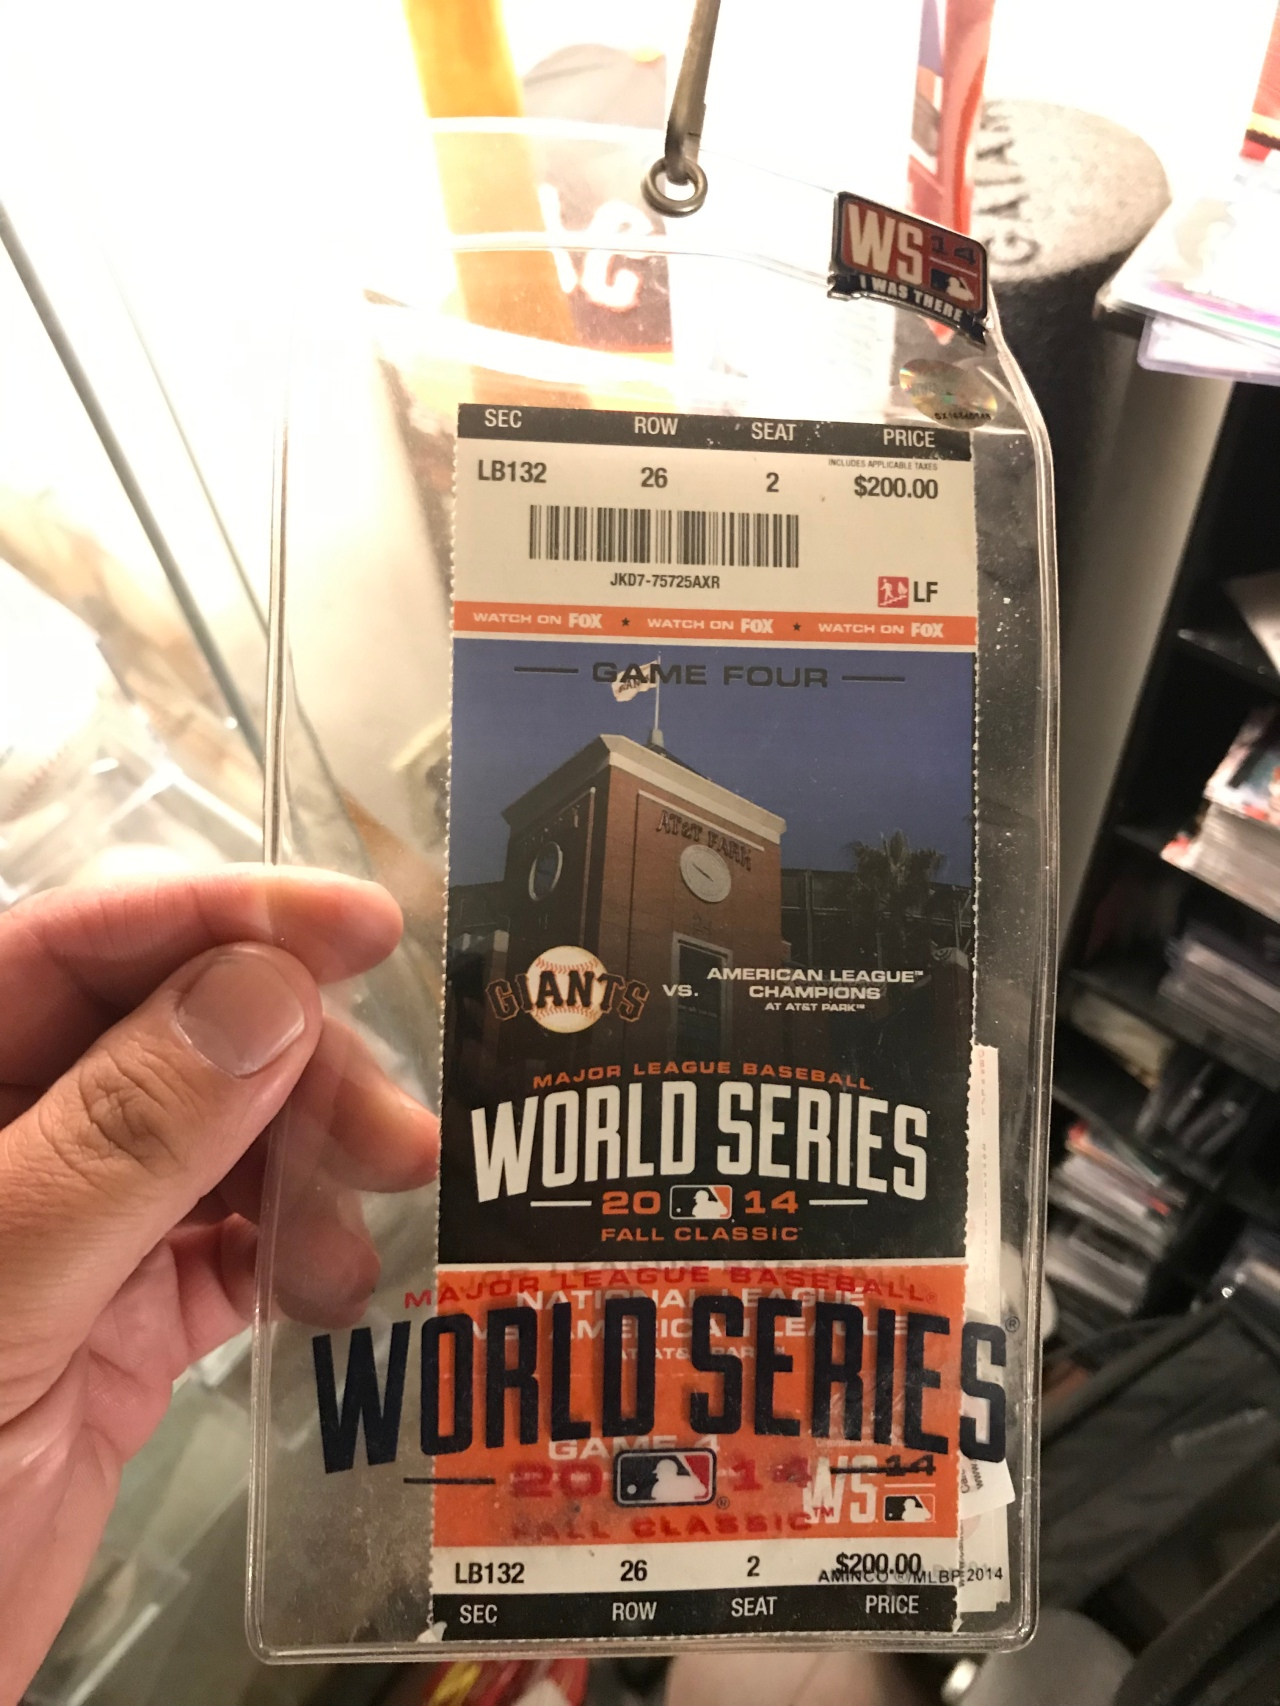 Technology not making it easy to obtain physical World Series Tickets